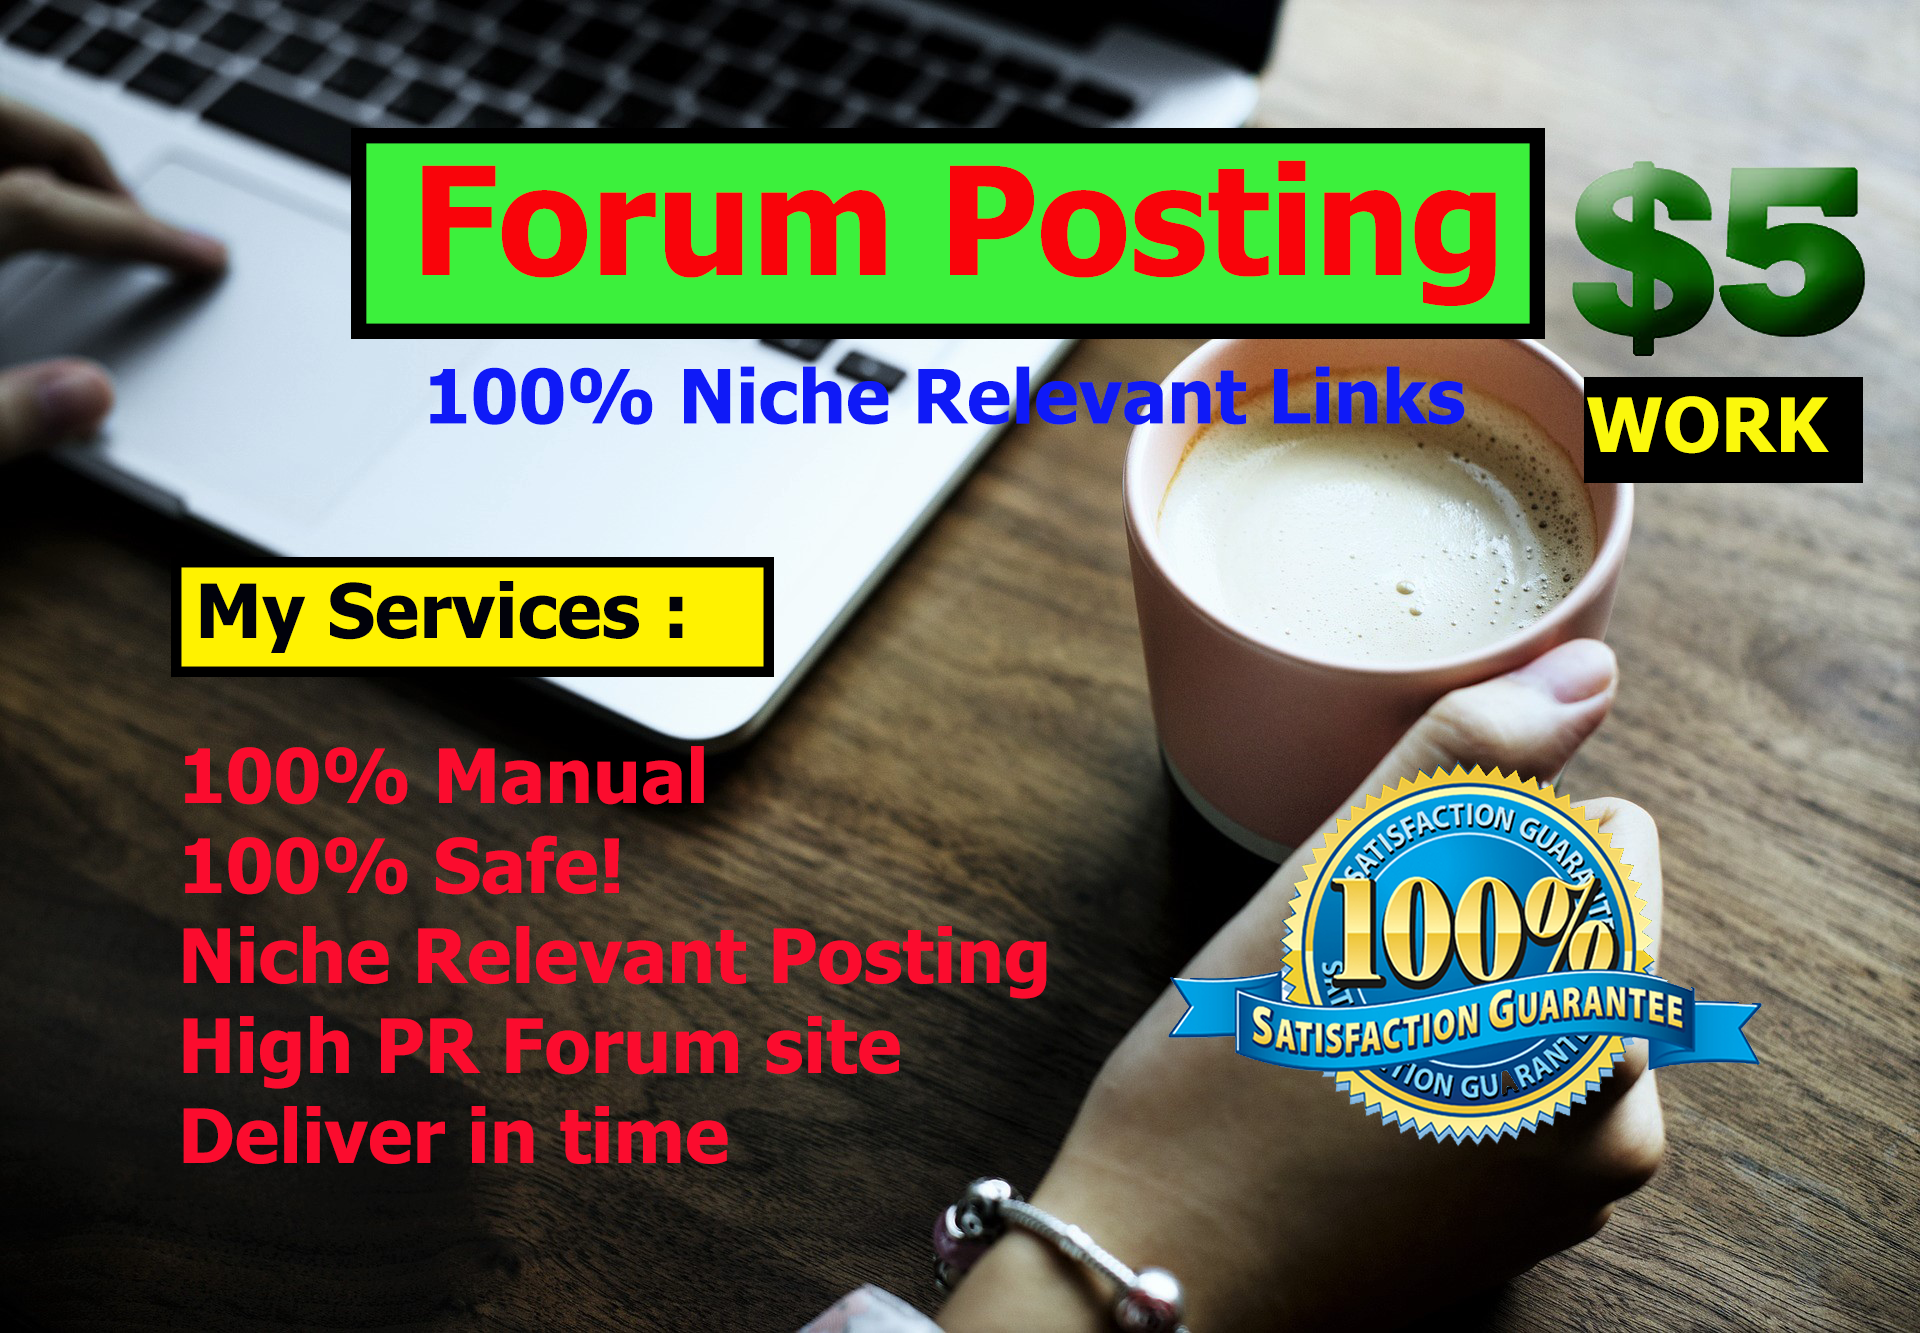 Create 8 Niche Relevant Forum Posting